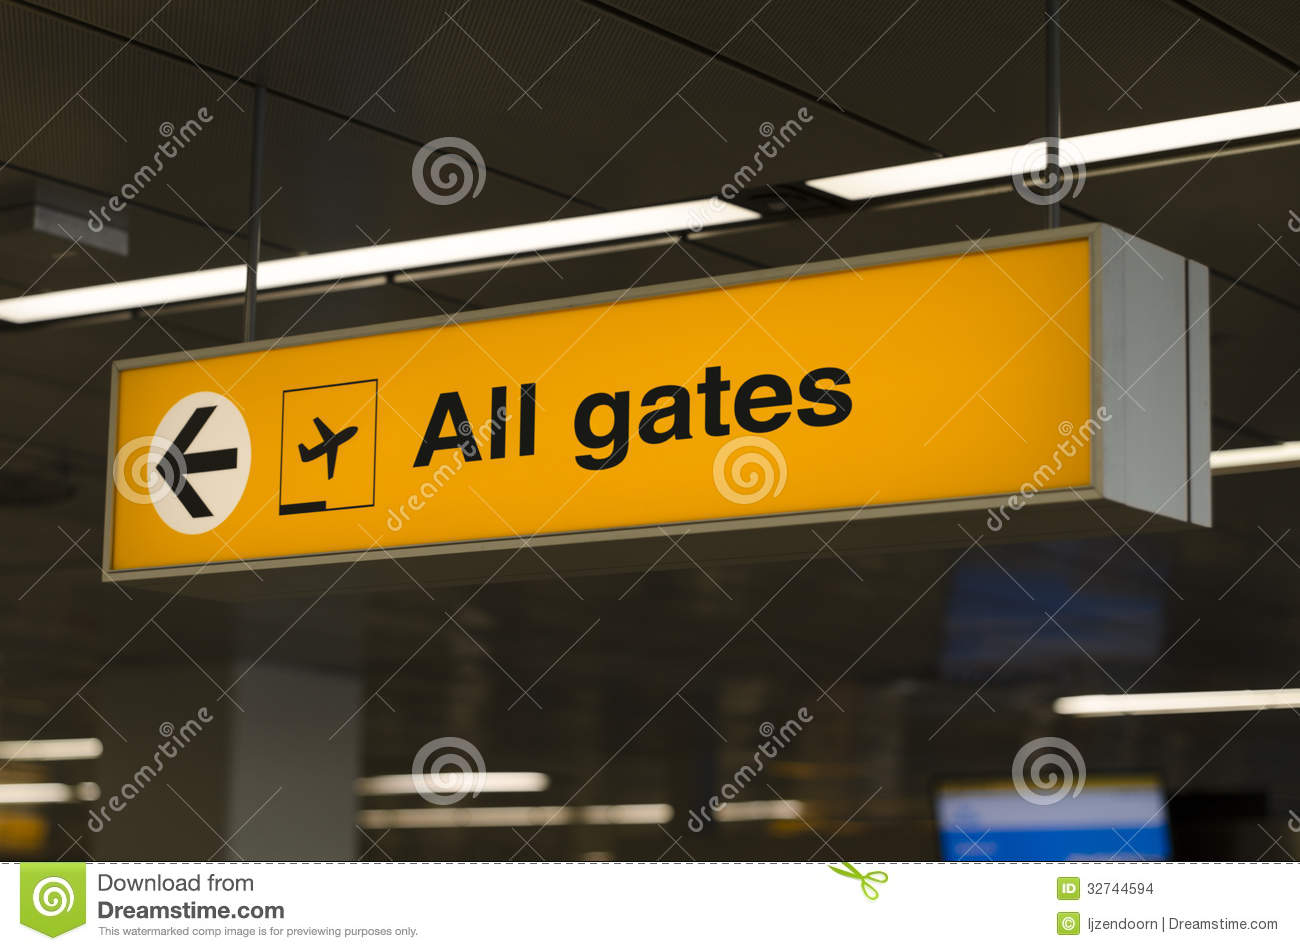 airport gate clipart - photo #43